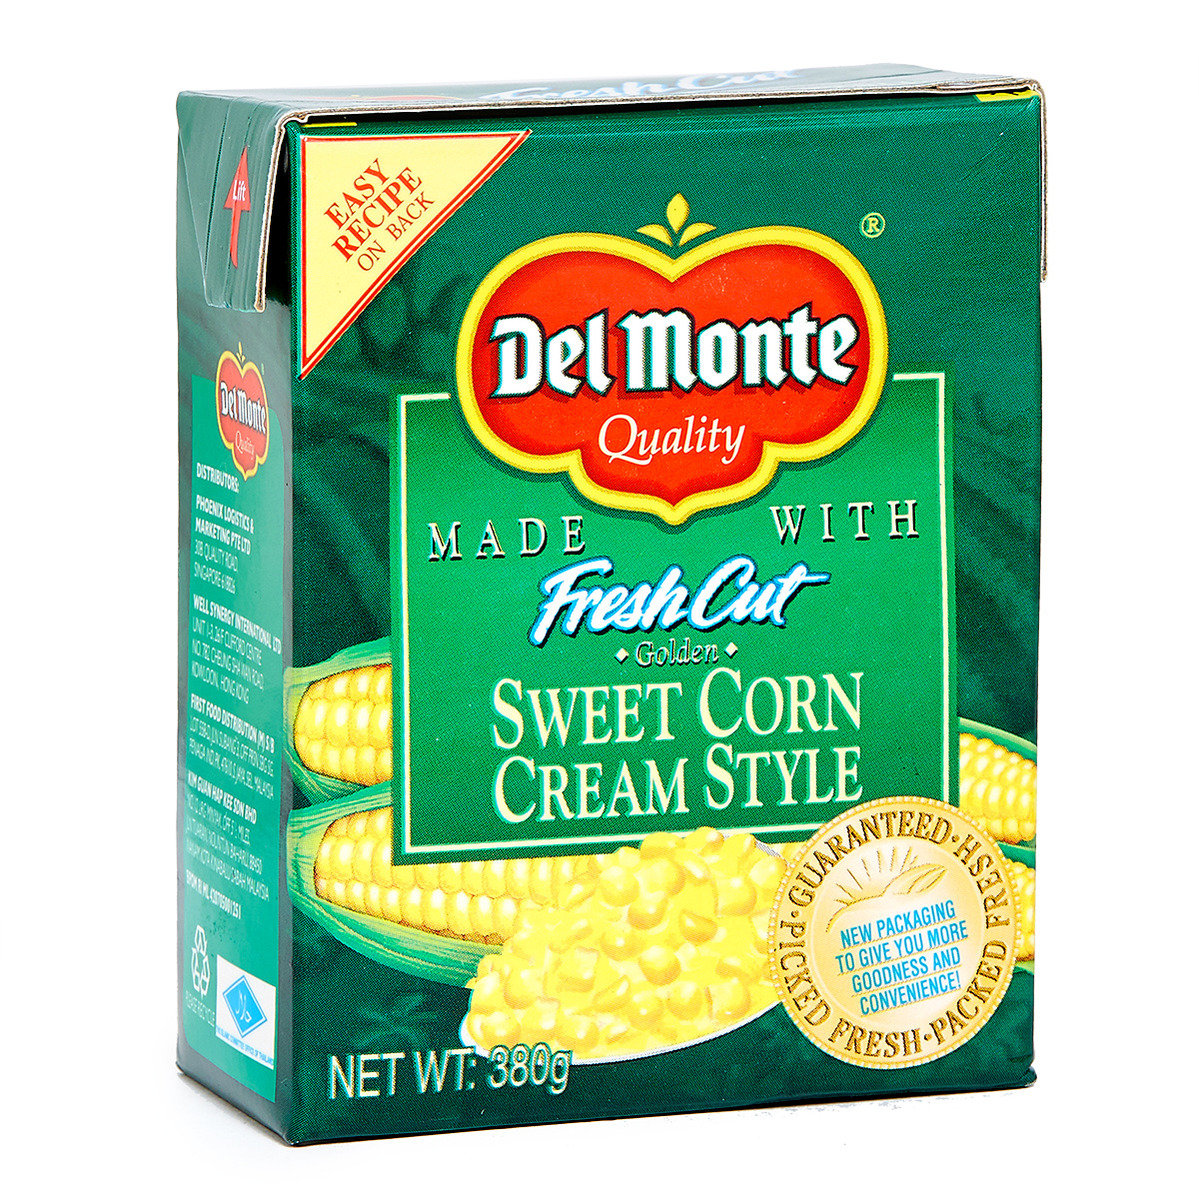 Terta Pack Cream Style Sweet Corn